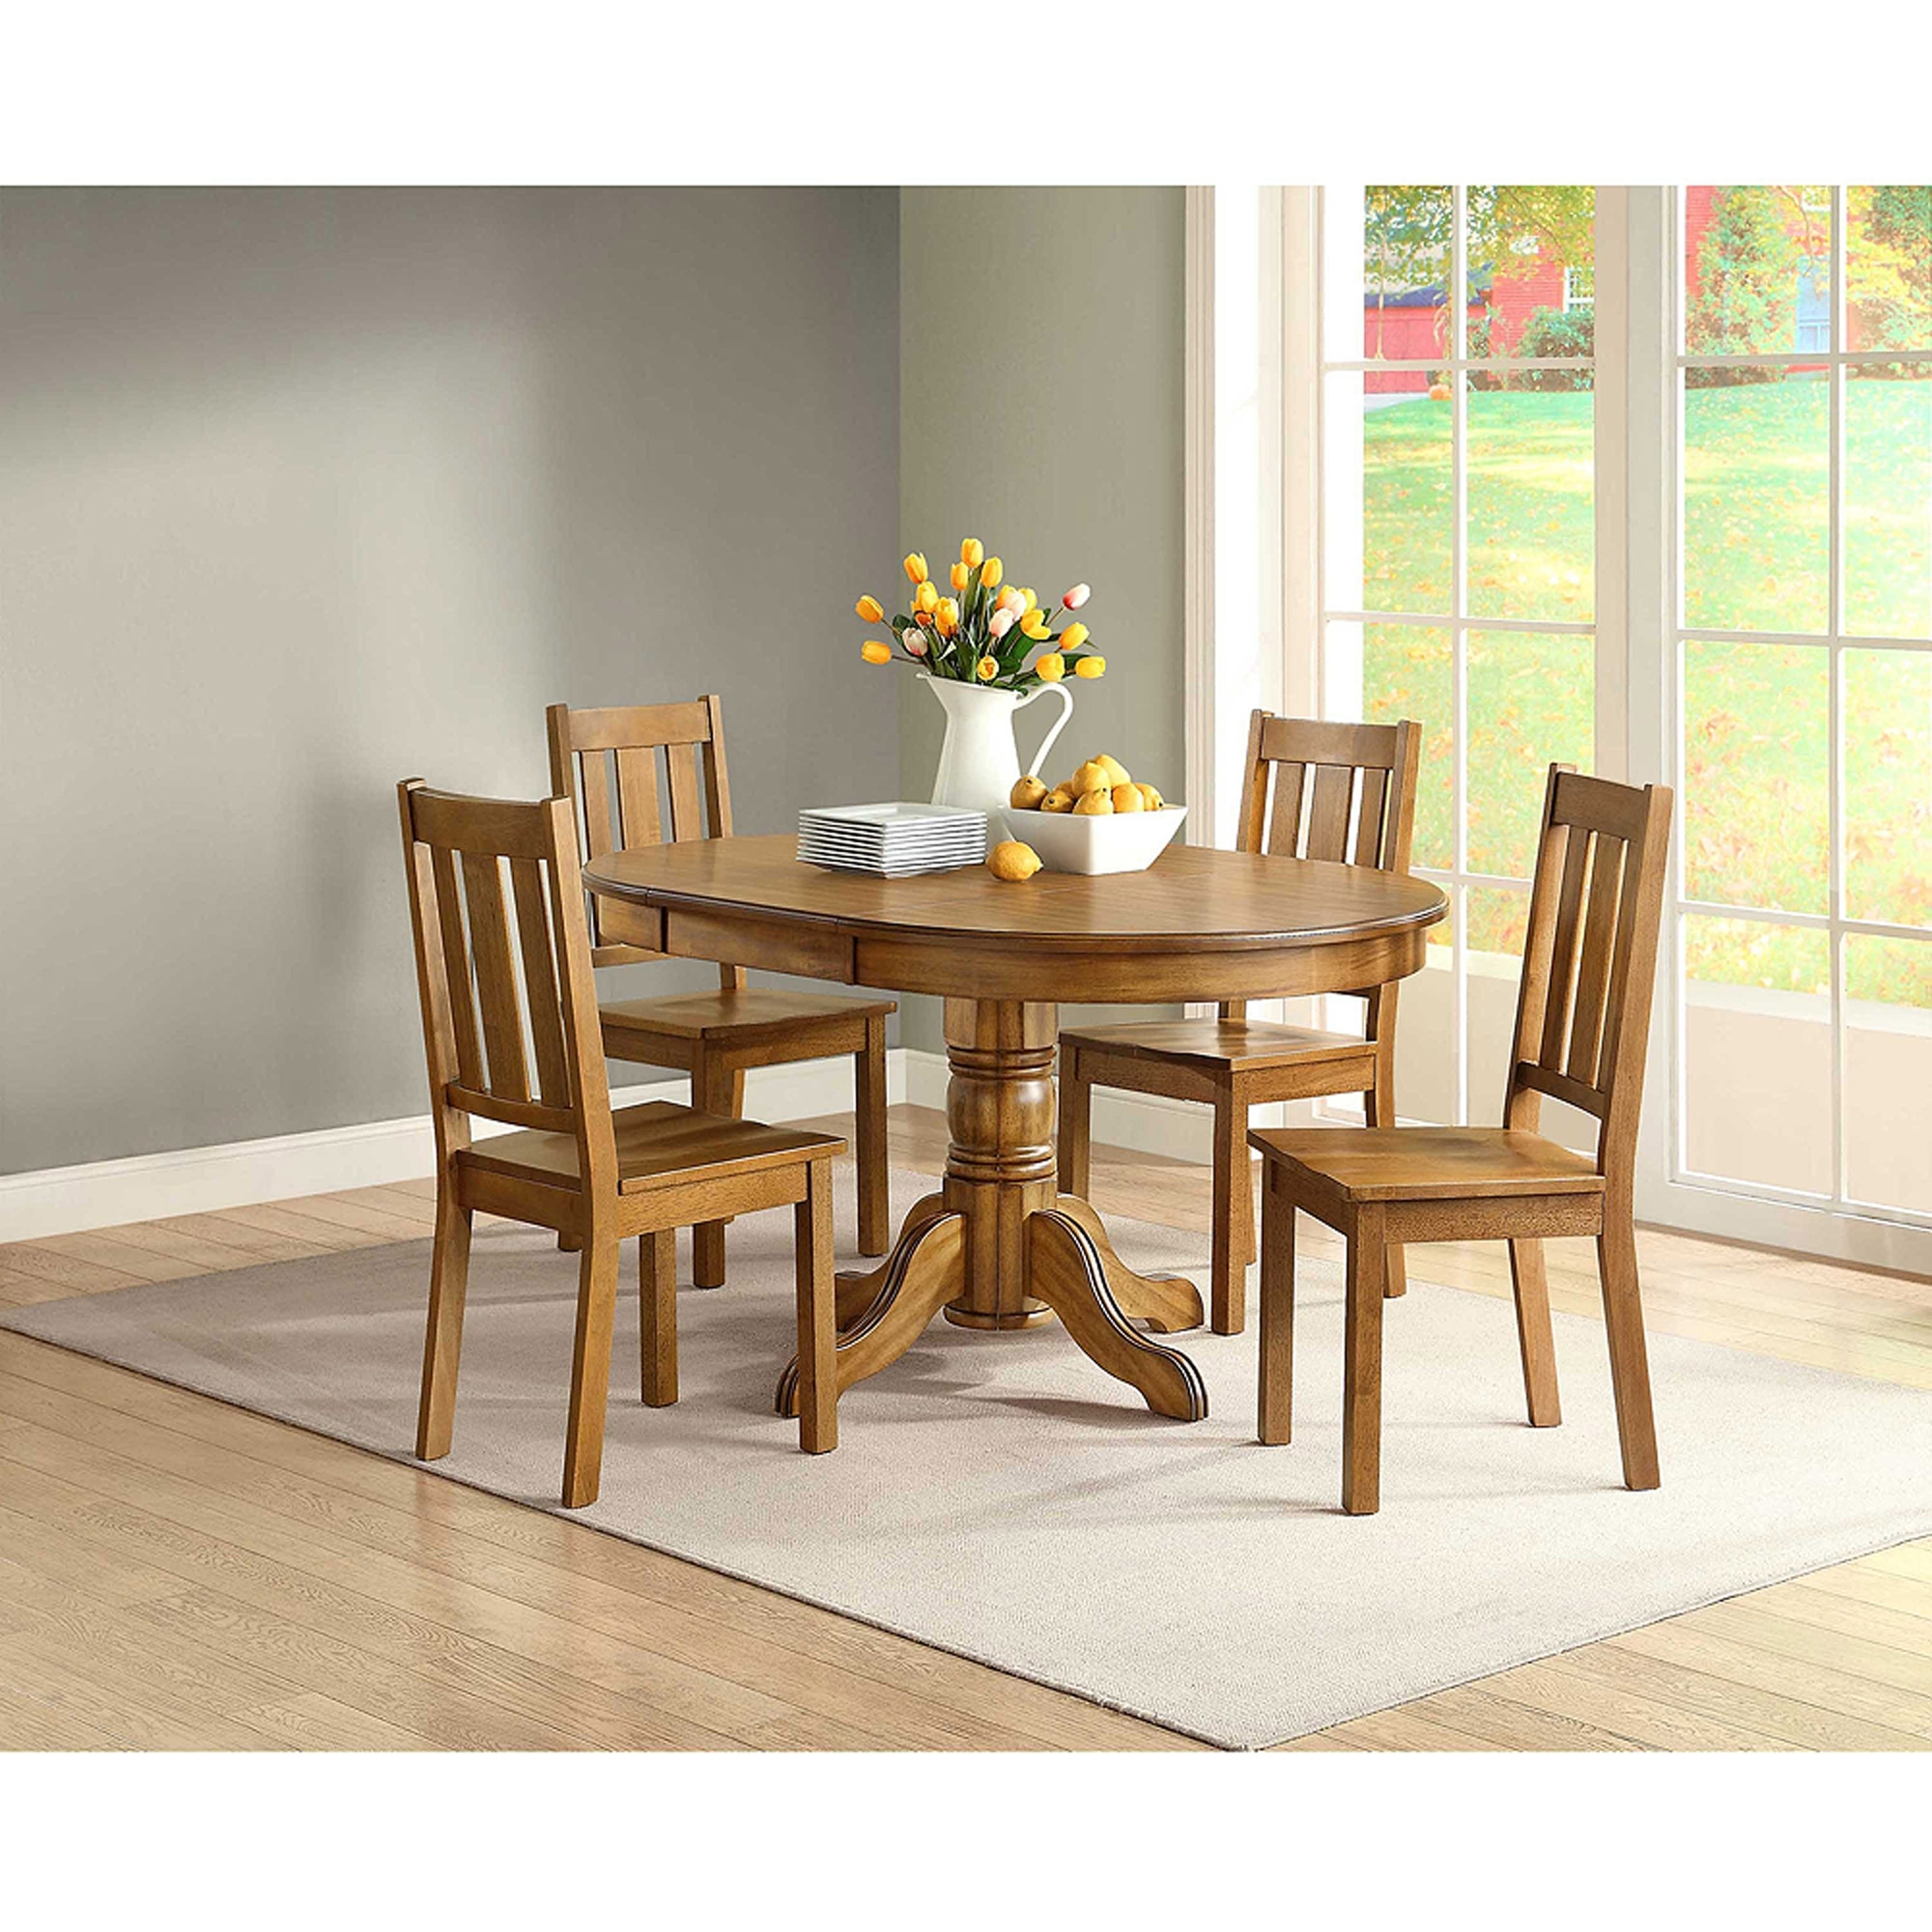 Dining Tables And Chairs Sets with Most Recent Better Homes And Gardens Bankston Dining Chair, Set Of 2, Honey